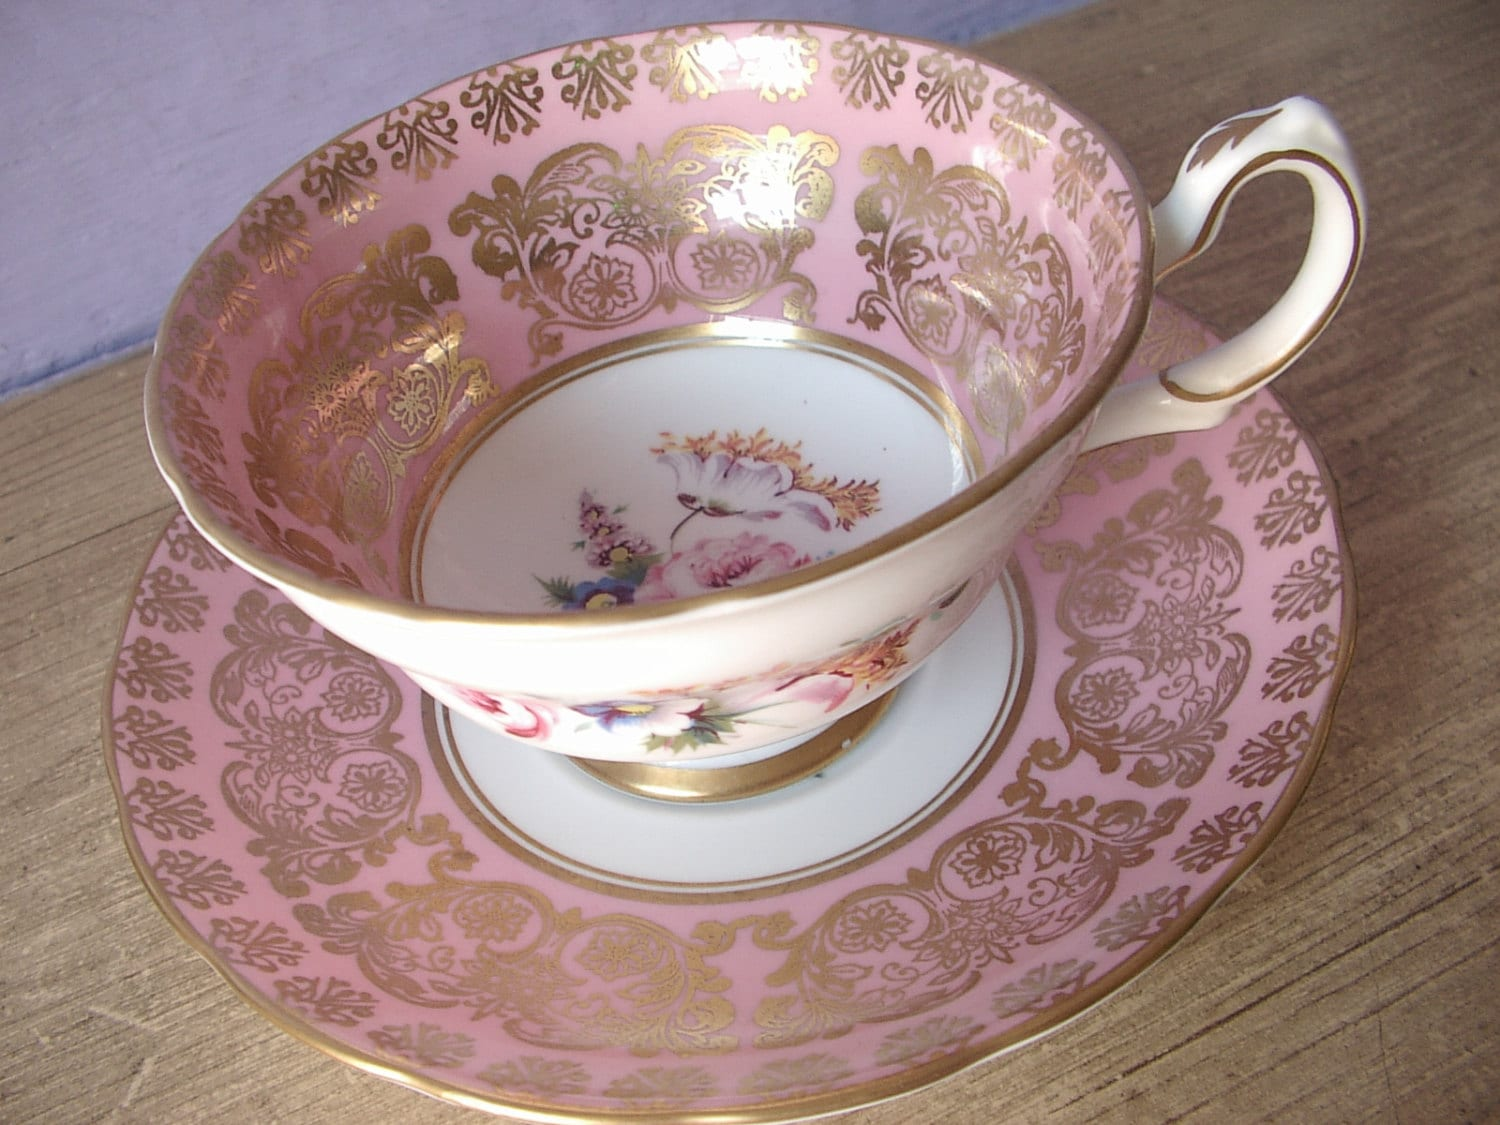 Antique 1940's Grosvenor pink tea cup and saucer set, English tea cup set, pink and gold bone china tea cup, pink tea set, pink wedding gift - ShoponSherman